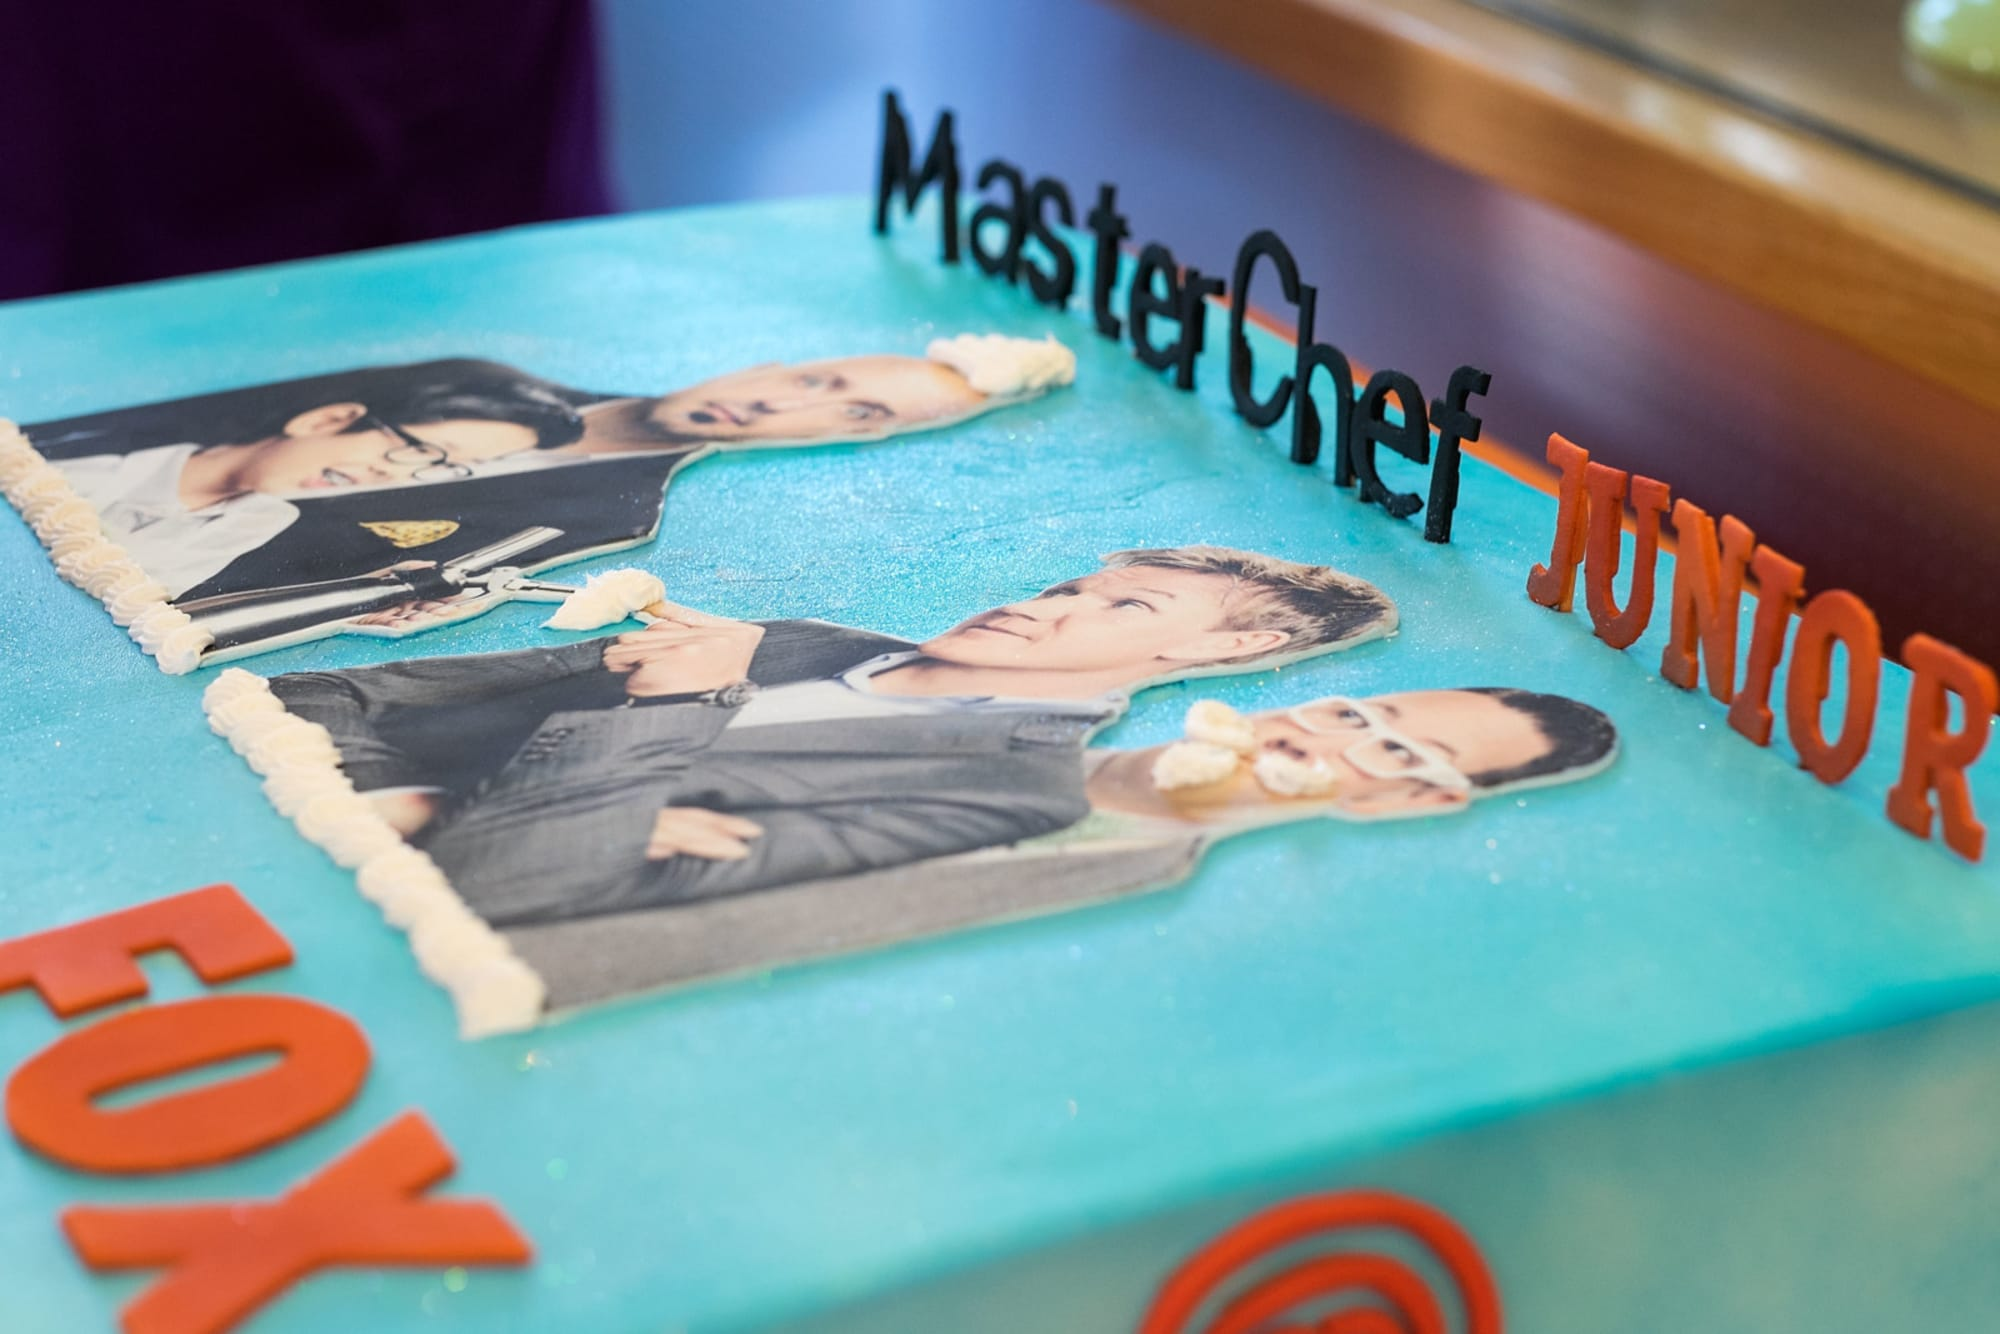 MasterChef Junior season 8 release date updates: Will there be a Season 8? When is it coming out?